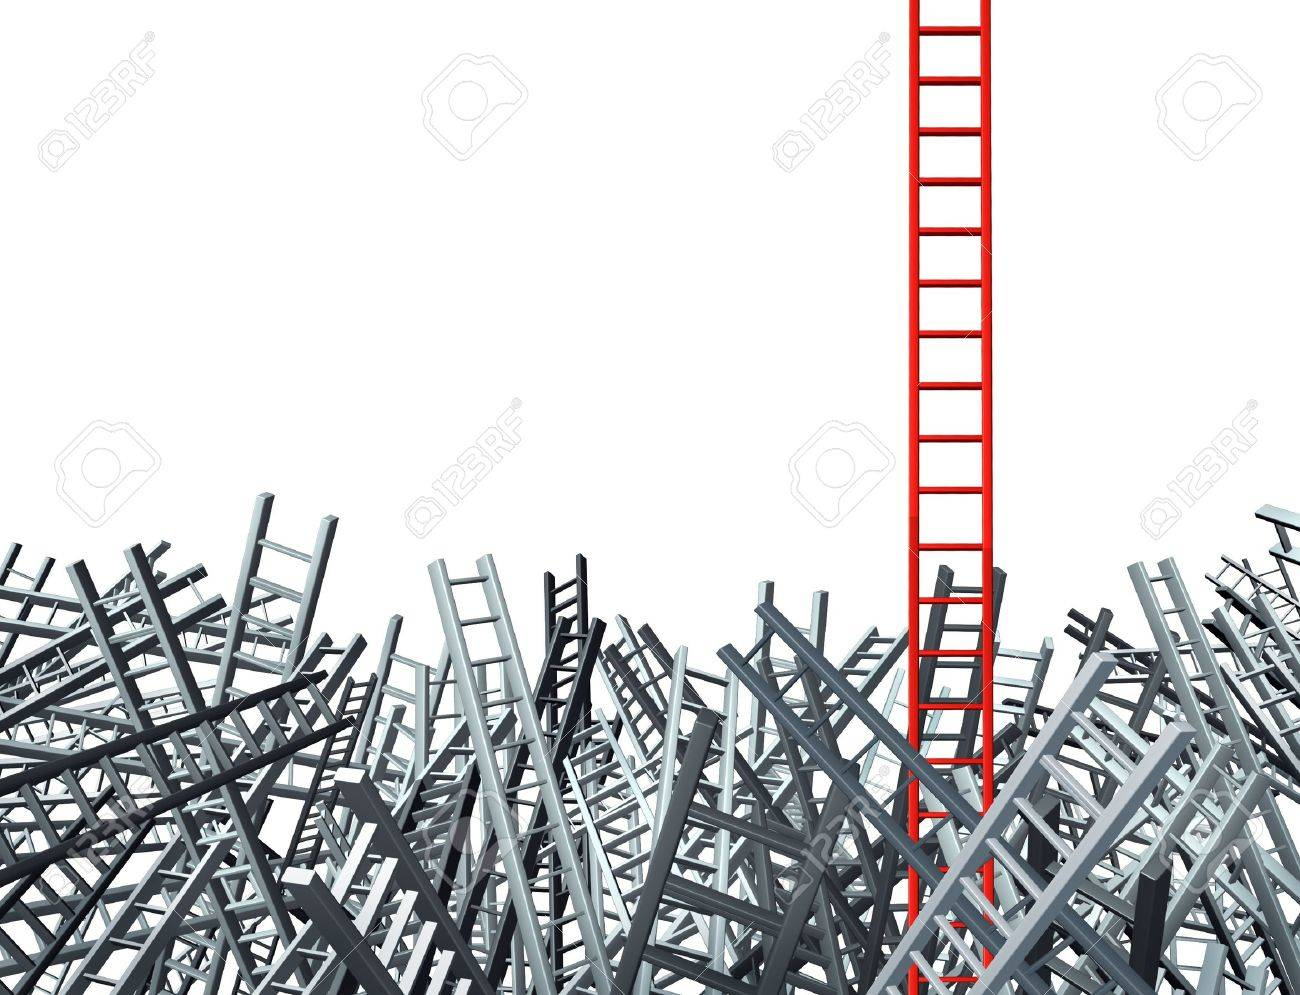 ladder standing out from a group of confused as grey ladders in disoriented directions Stock Photo - 12667430